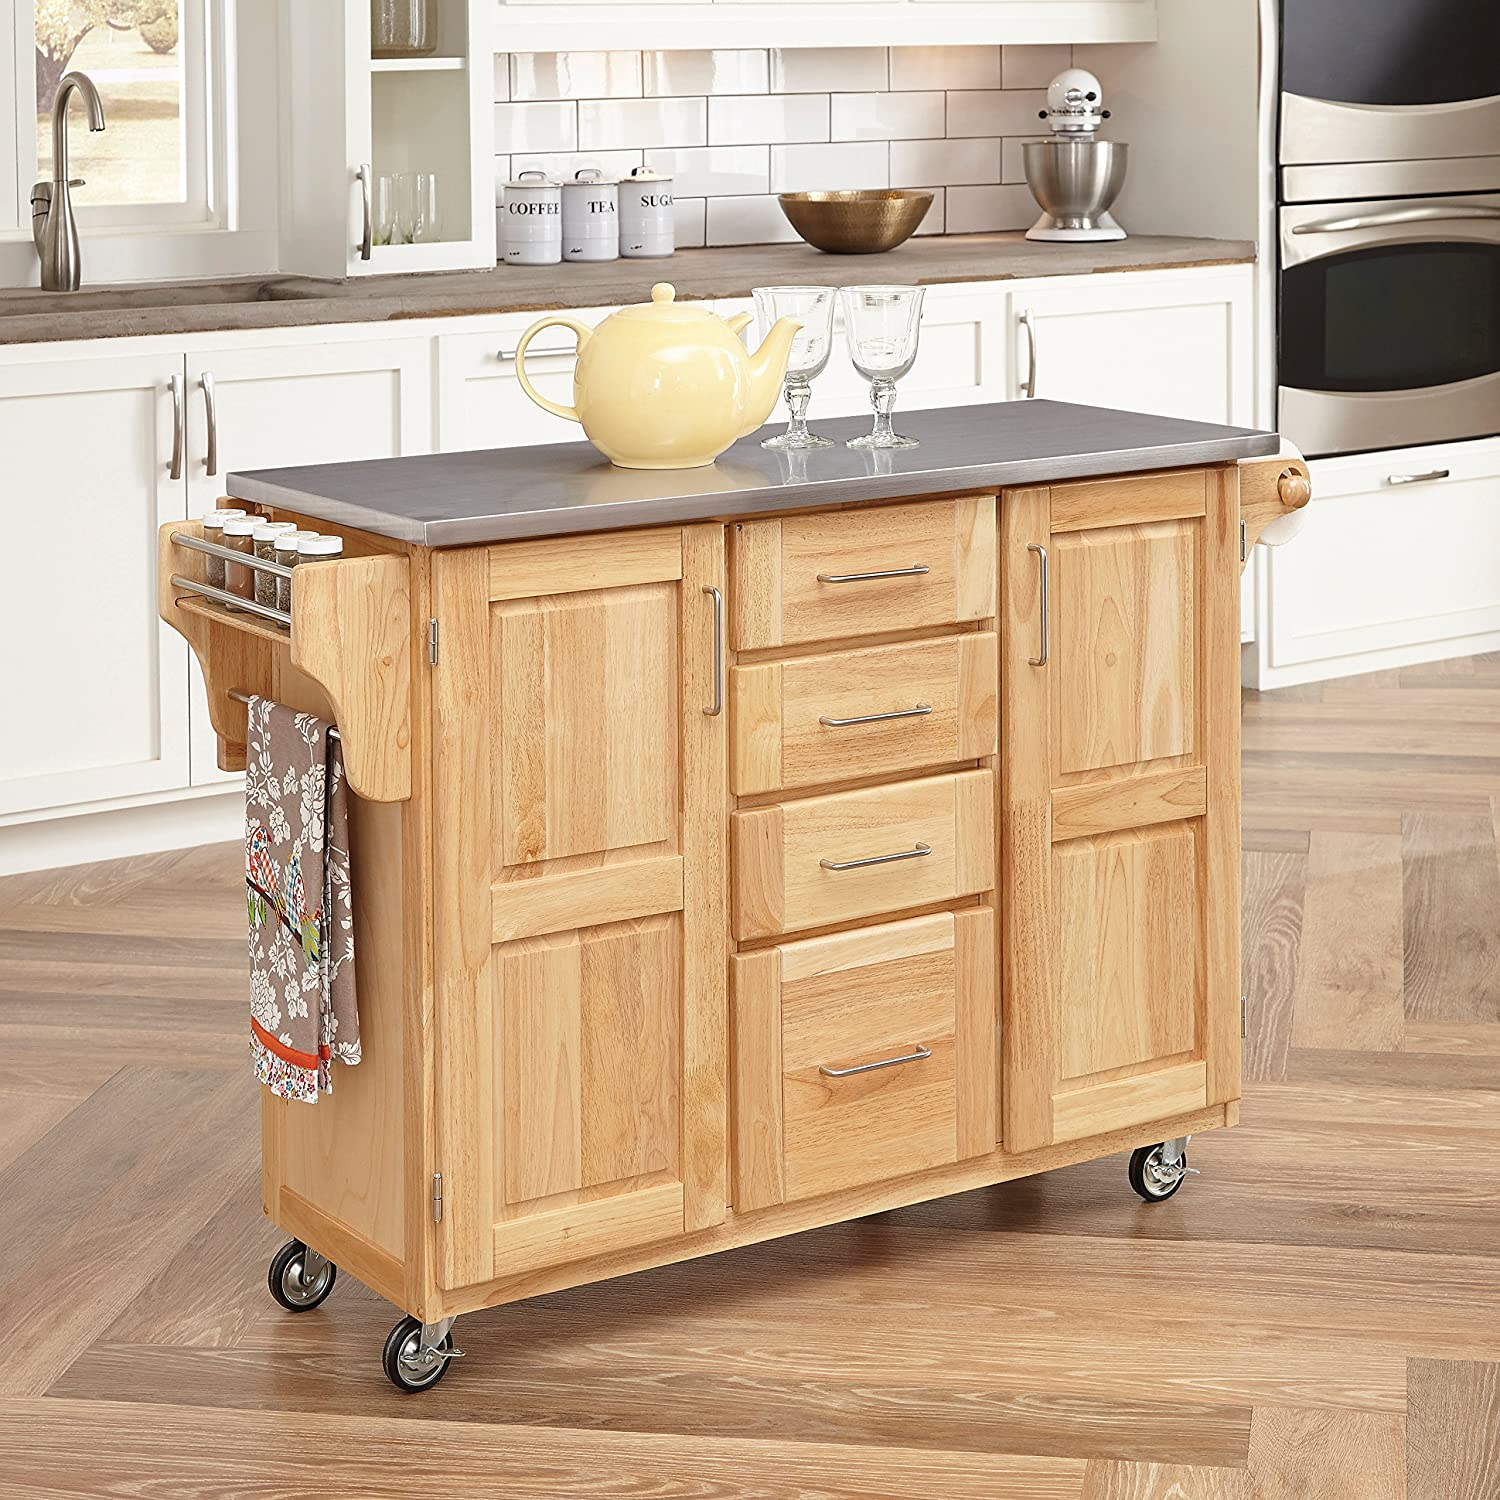 steel kitchen optional crosley stainless with cart walmart storage com stool top ip furniture